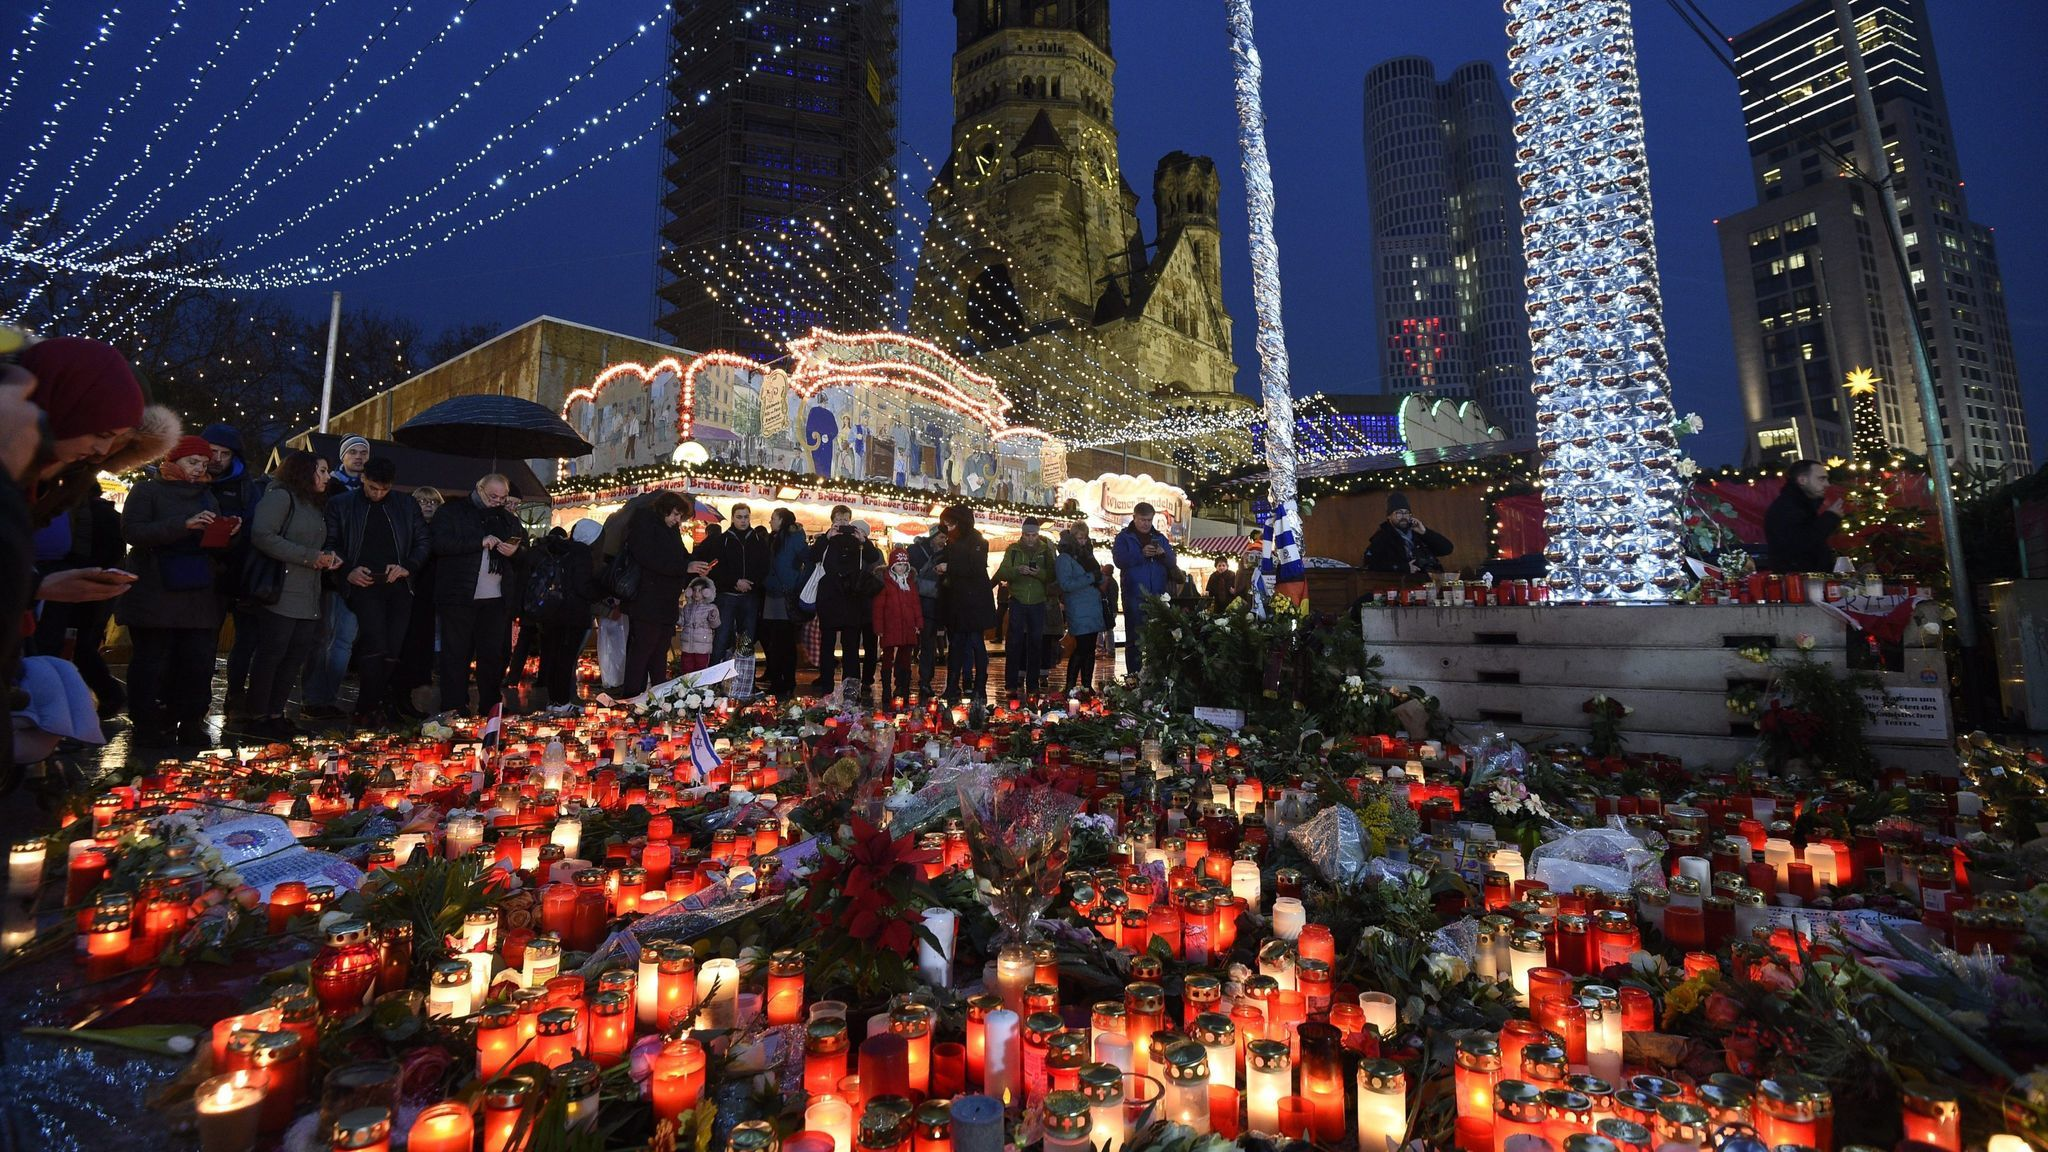 Candles illuminate the scenery at the reopened Christmas Market in Berlin, where on Dec. 19, 2016, an assailant drove a truck into a crowd.